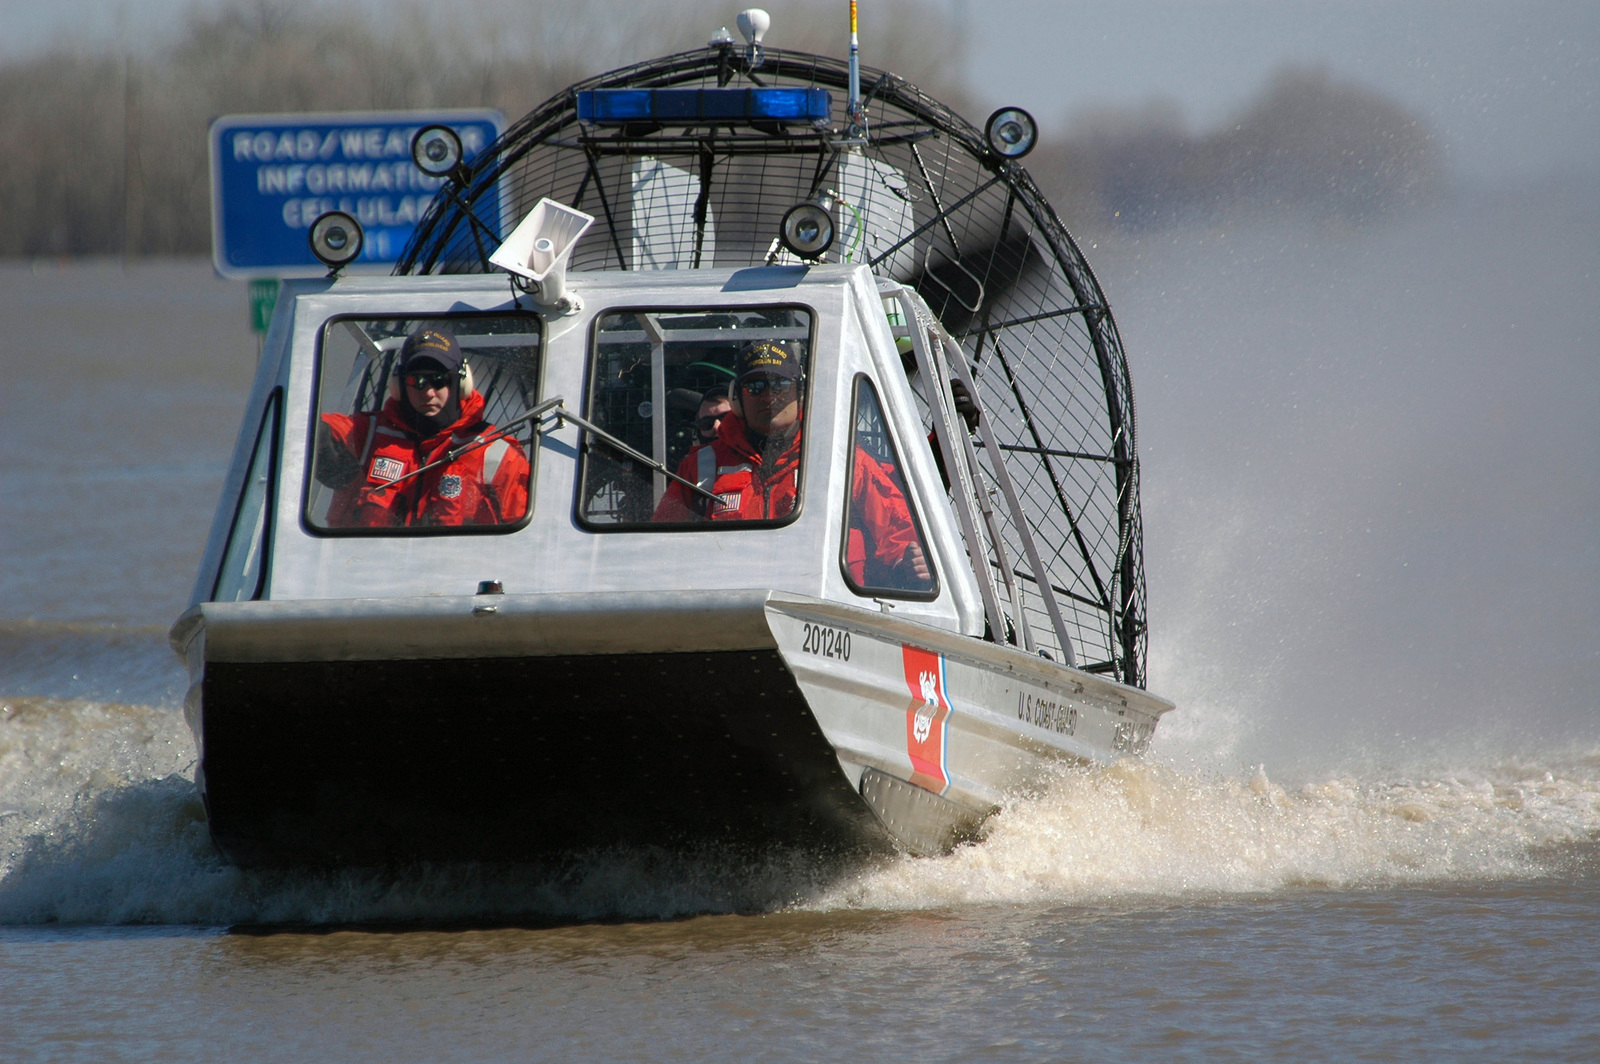 US Coast Guard (USCG) SENIOR CHIEF Boatswains Mate (BMC) Tony Hiller (right), from USCG Station Sturgeon Bay, Wisconsin (WI), pilots a USCG 20-foot Ice Boat as he navigates through flood waters covering Minnesota Highway 1, located east of Oslo, Minnesota (MN), on his way back from delivering prescription medicines and other humanitarian supplies to civilians who are stranded because the Red River has overflowed its banks and flooded the surrounding area